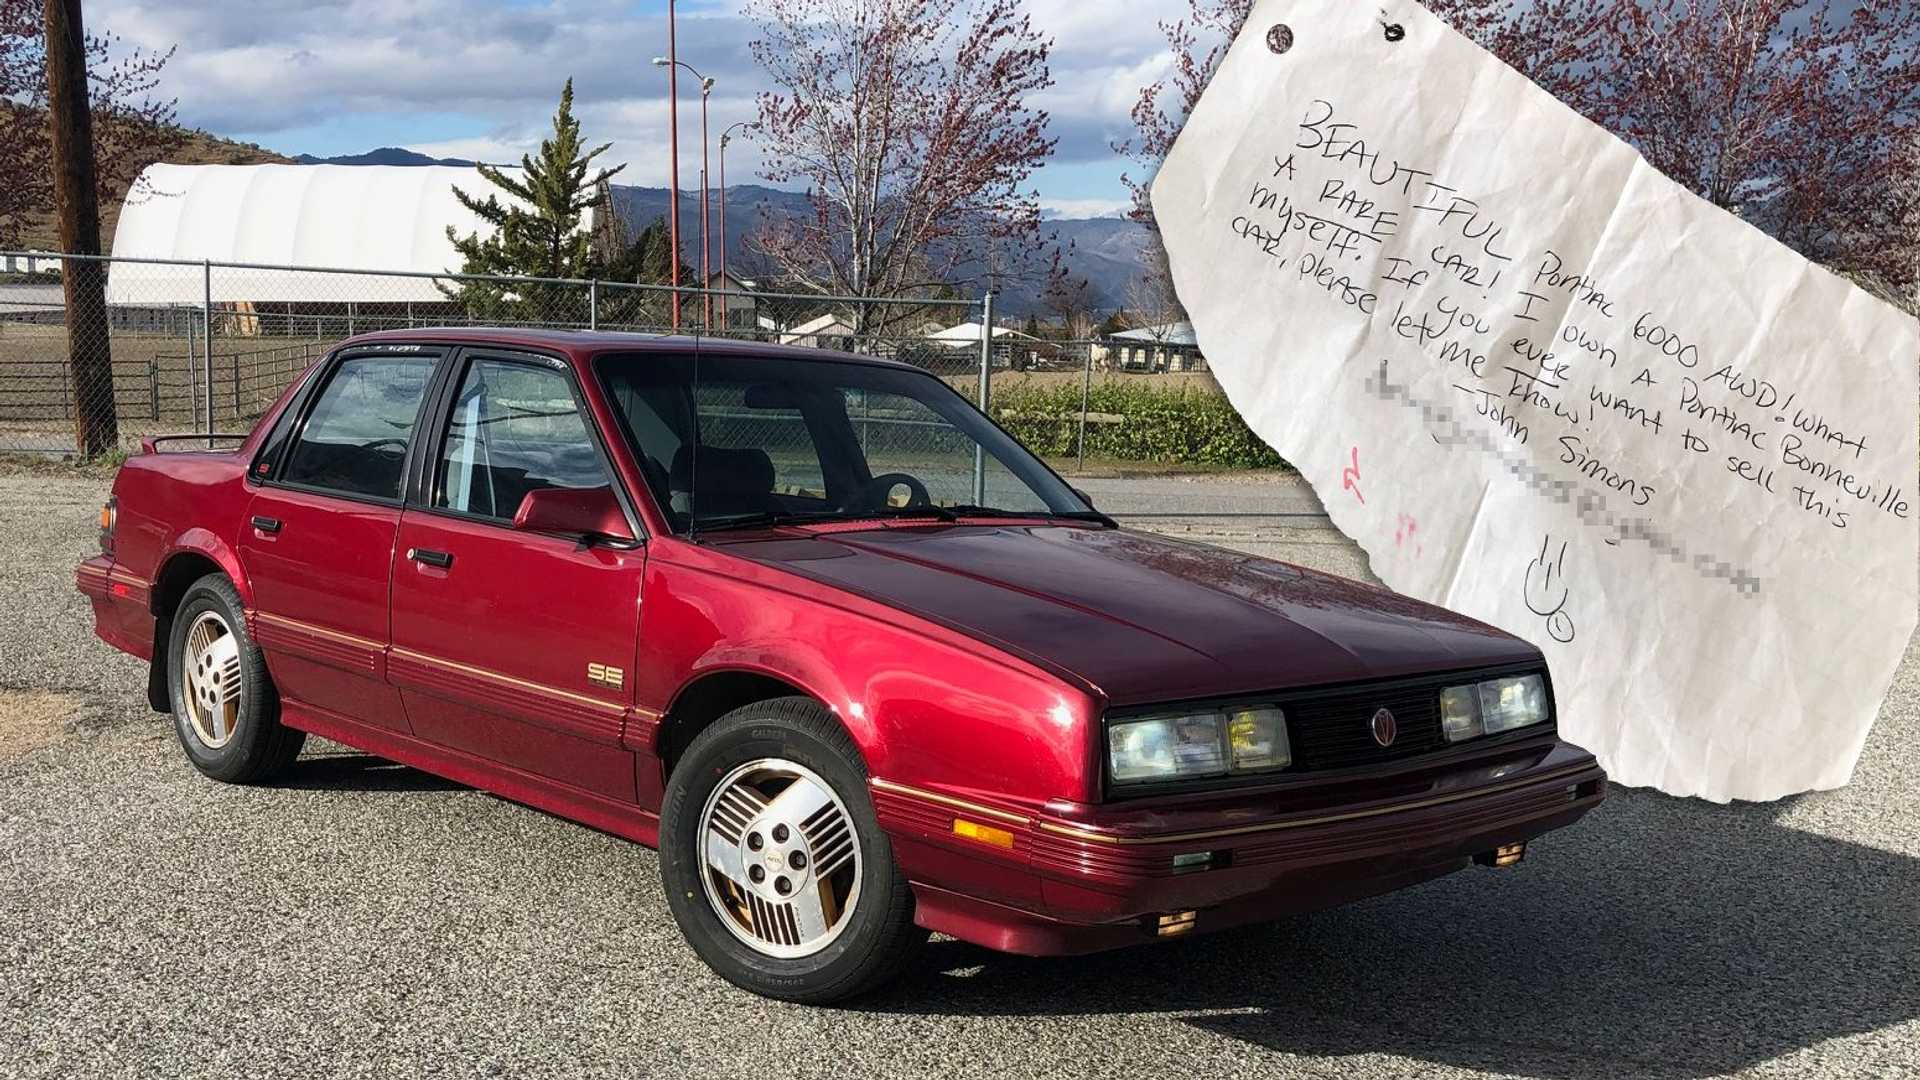 This Guy Just Bought A Pontiac 6000 He Left A Note On 14 Years Ago